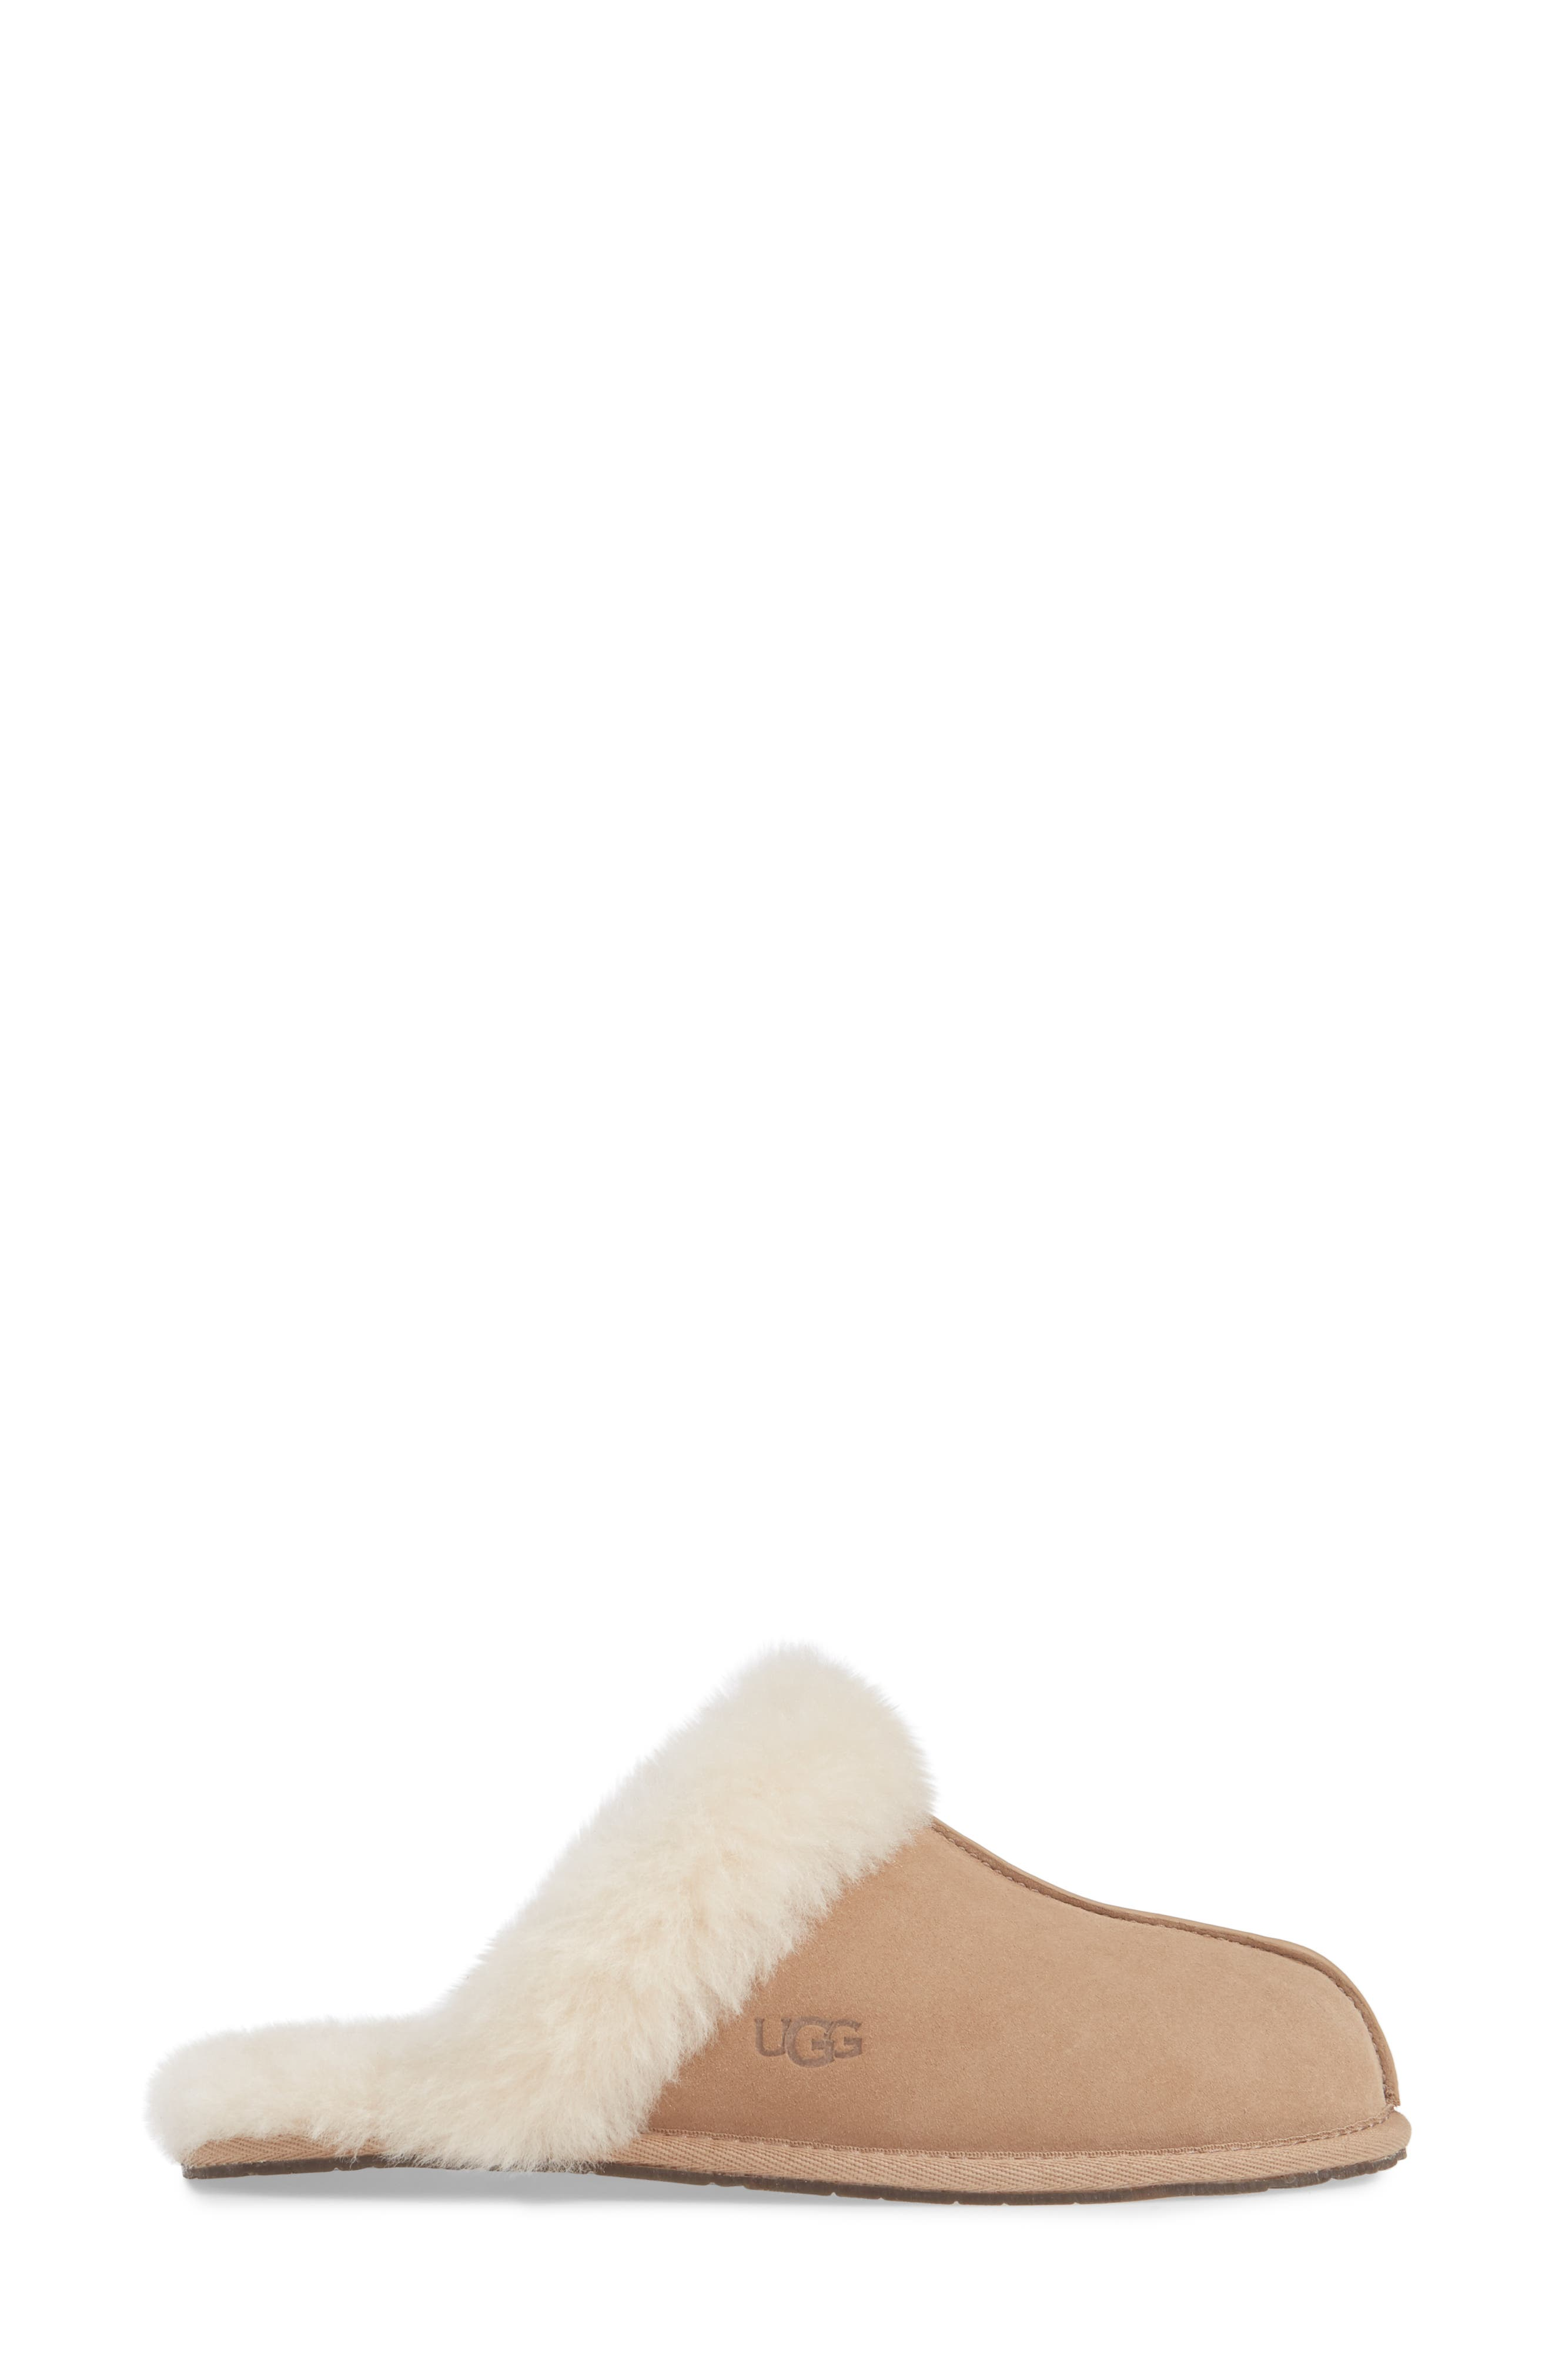 ,                             Scuffette II Water Resistant Slipper,                             Alternate thumbnail 32, color,                             200